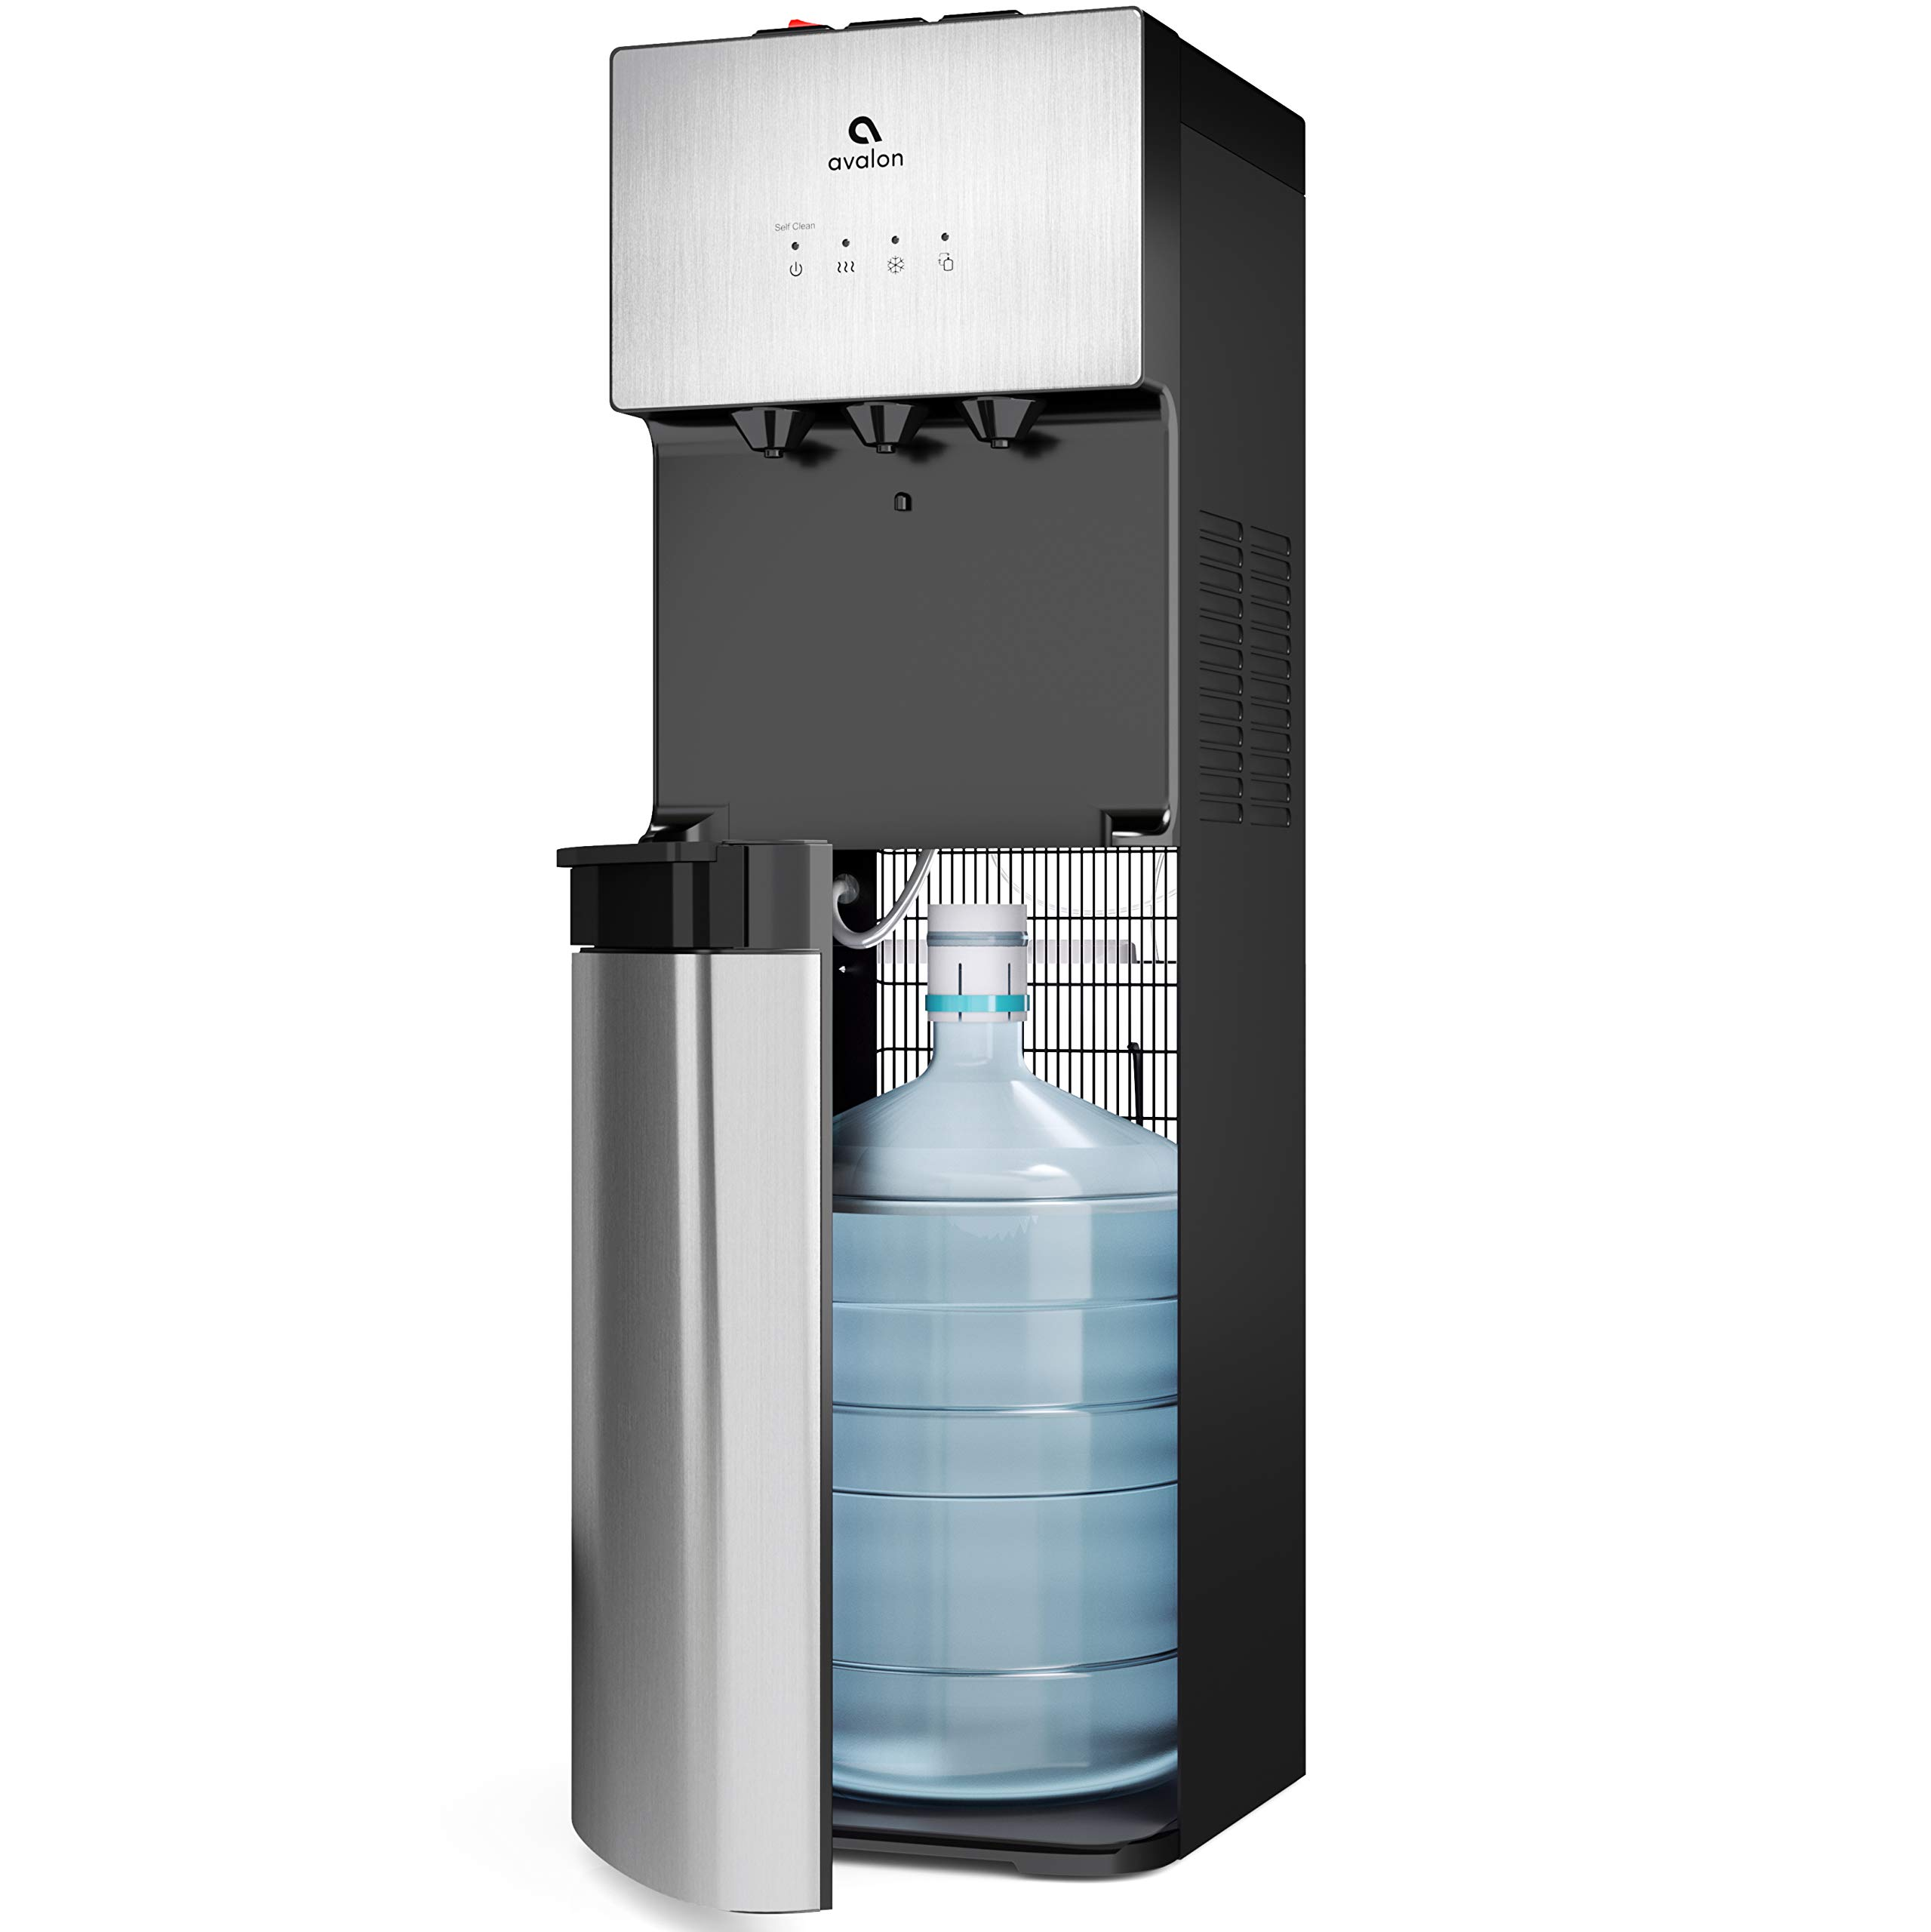 Avalon Limited Edition Self Cleaning Water Cooler Dispenser, 3 Temperature Settings - Hot, Cold & Cool Water, Durable Stainless Steel Construction, Bottom Loading - UL/Energy Star Approved